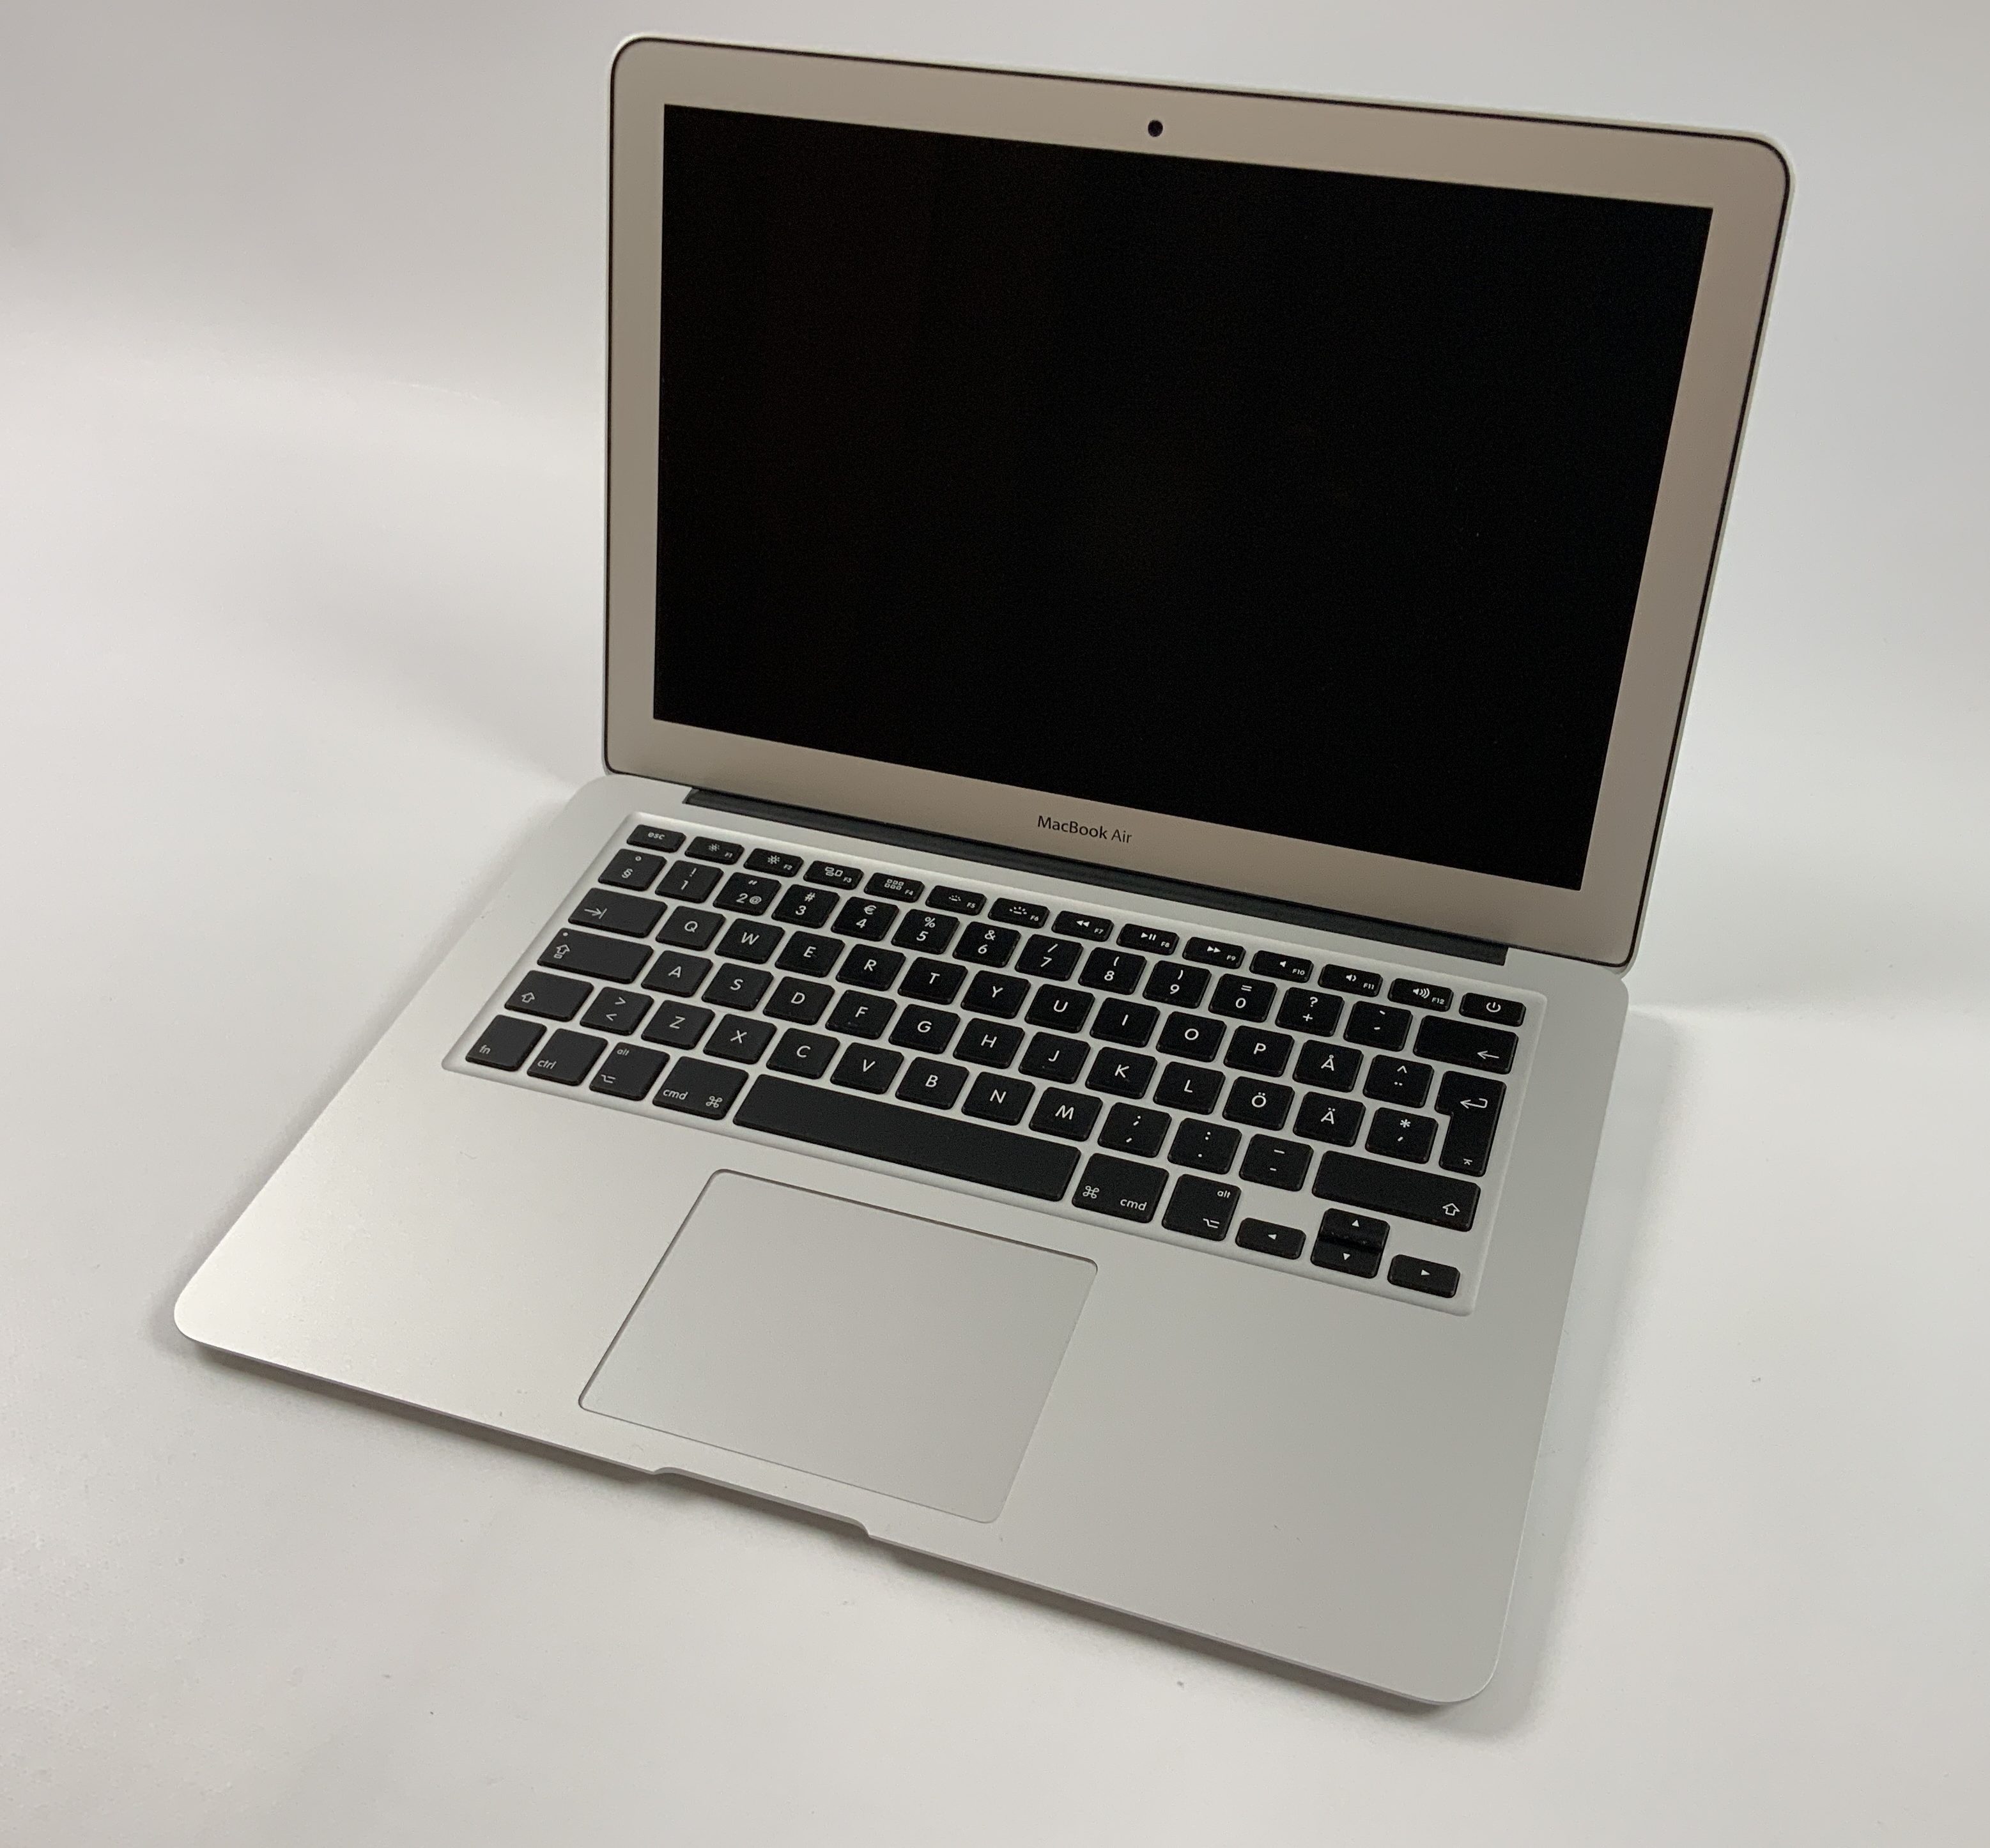 "MacBook Air 13"" Early 2014 (Intel Core i5 1.4 GHz 8 GB RAM 128 GB SSD), Intel Core i5 1.4 GHz, 8 GB RAM, 128 GB SSD, Kuva 1"